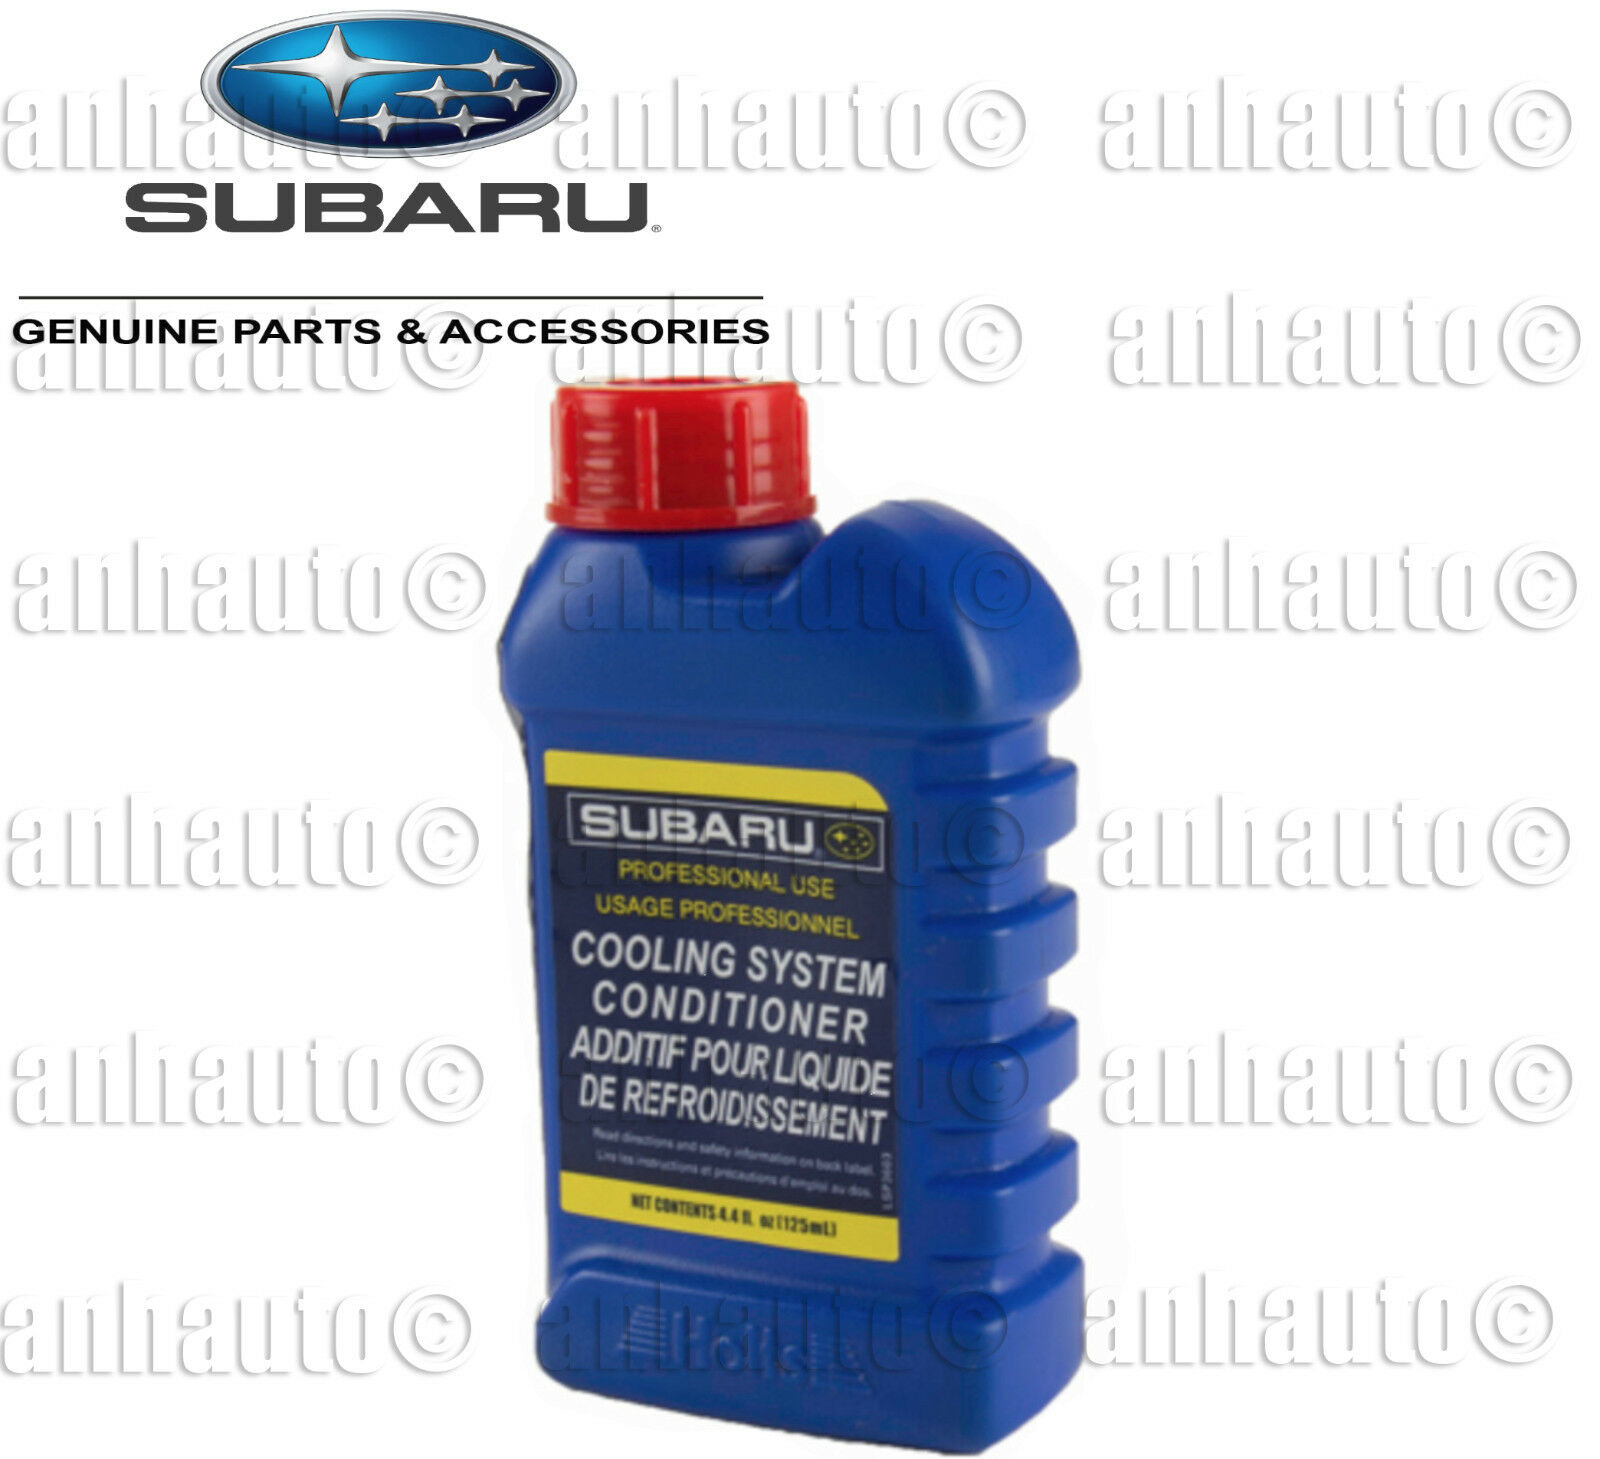 Genuine Subaru Cooling System Conditioner Coolant Head Gasket 12 1998 Outback Pack Case Soa635071 Factory